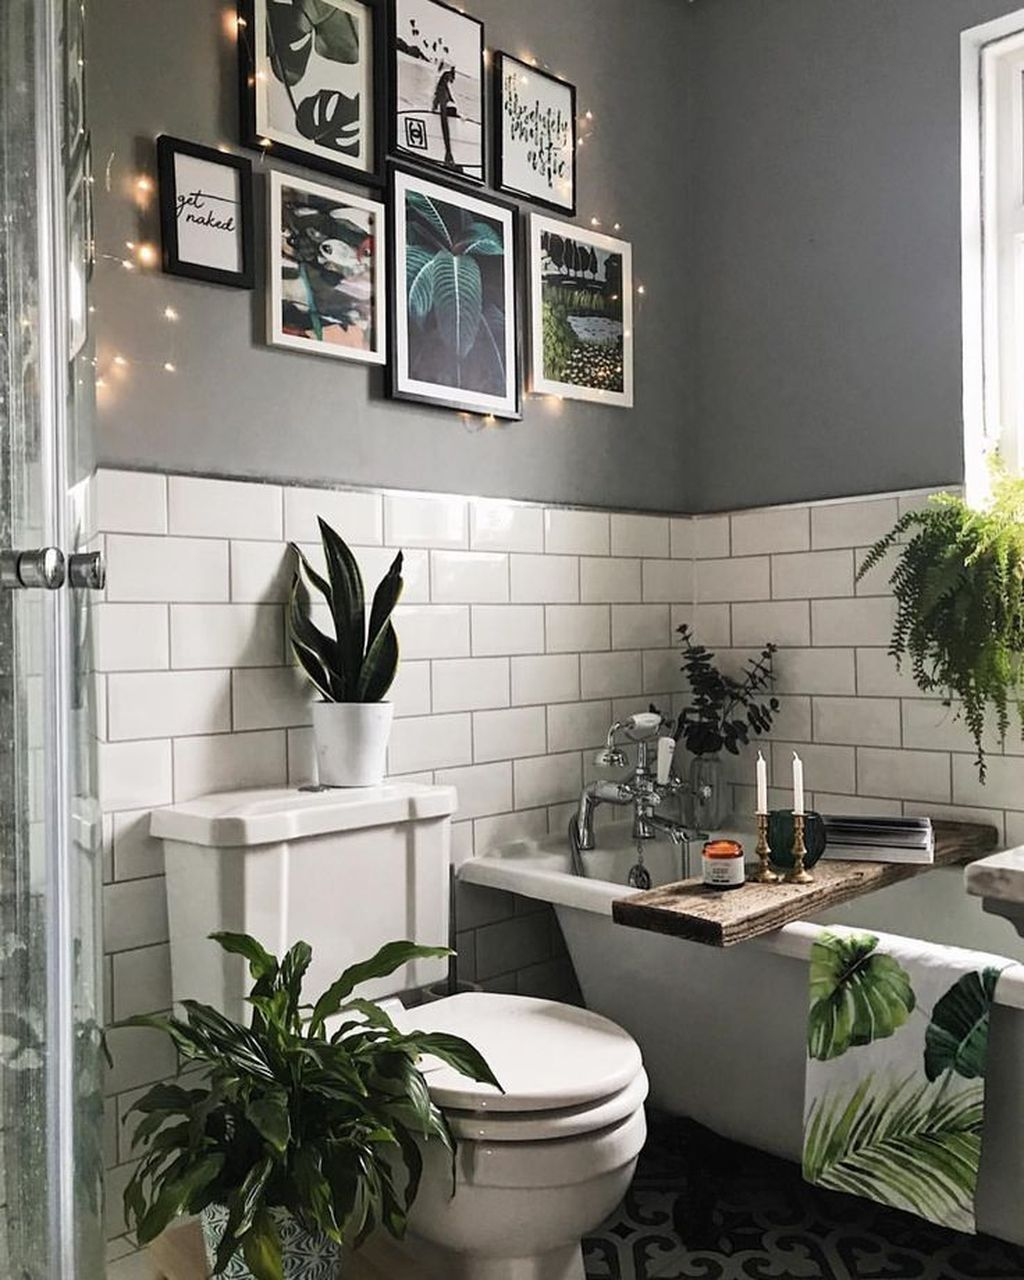 30 Best Gray And White Bathroom Design For Your New Bathroom Inspiration Trenduhome Gray Bathroom Walls White Bathroom Designs Gray And White Bathroom